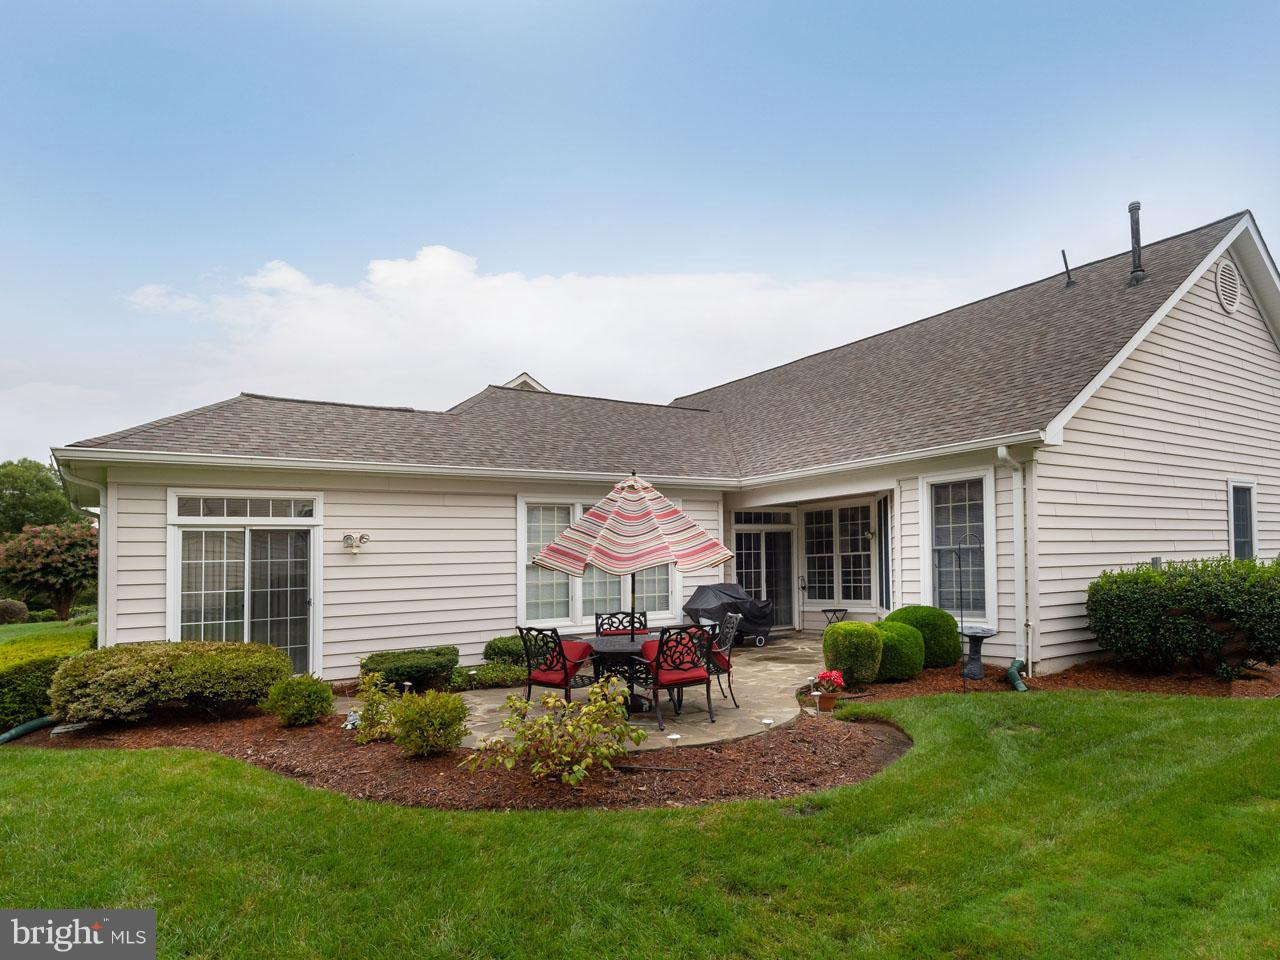 1005040466-300638083703-2021-07-22-06-45-08        Gainesville Delaware Real Estate For Sale   MLS# 1005040466  - Best of Northern Virginia